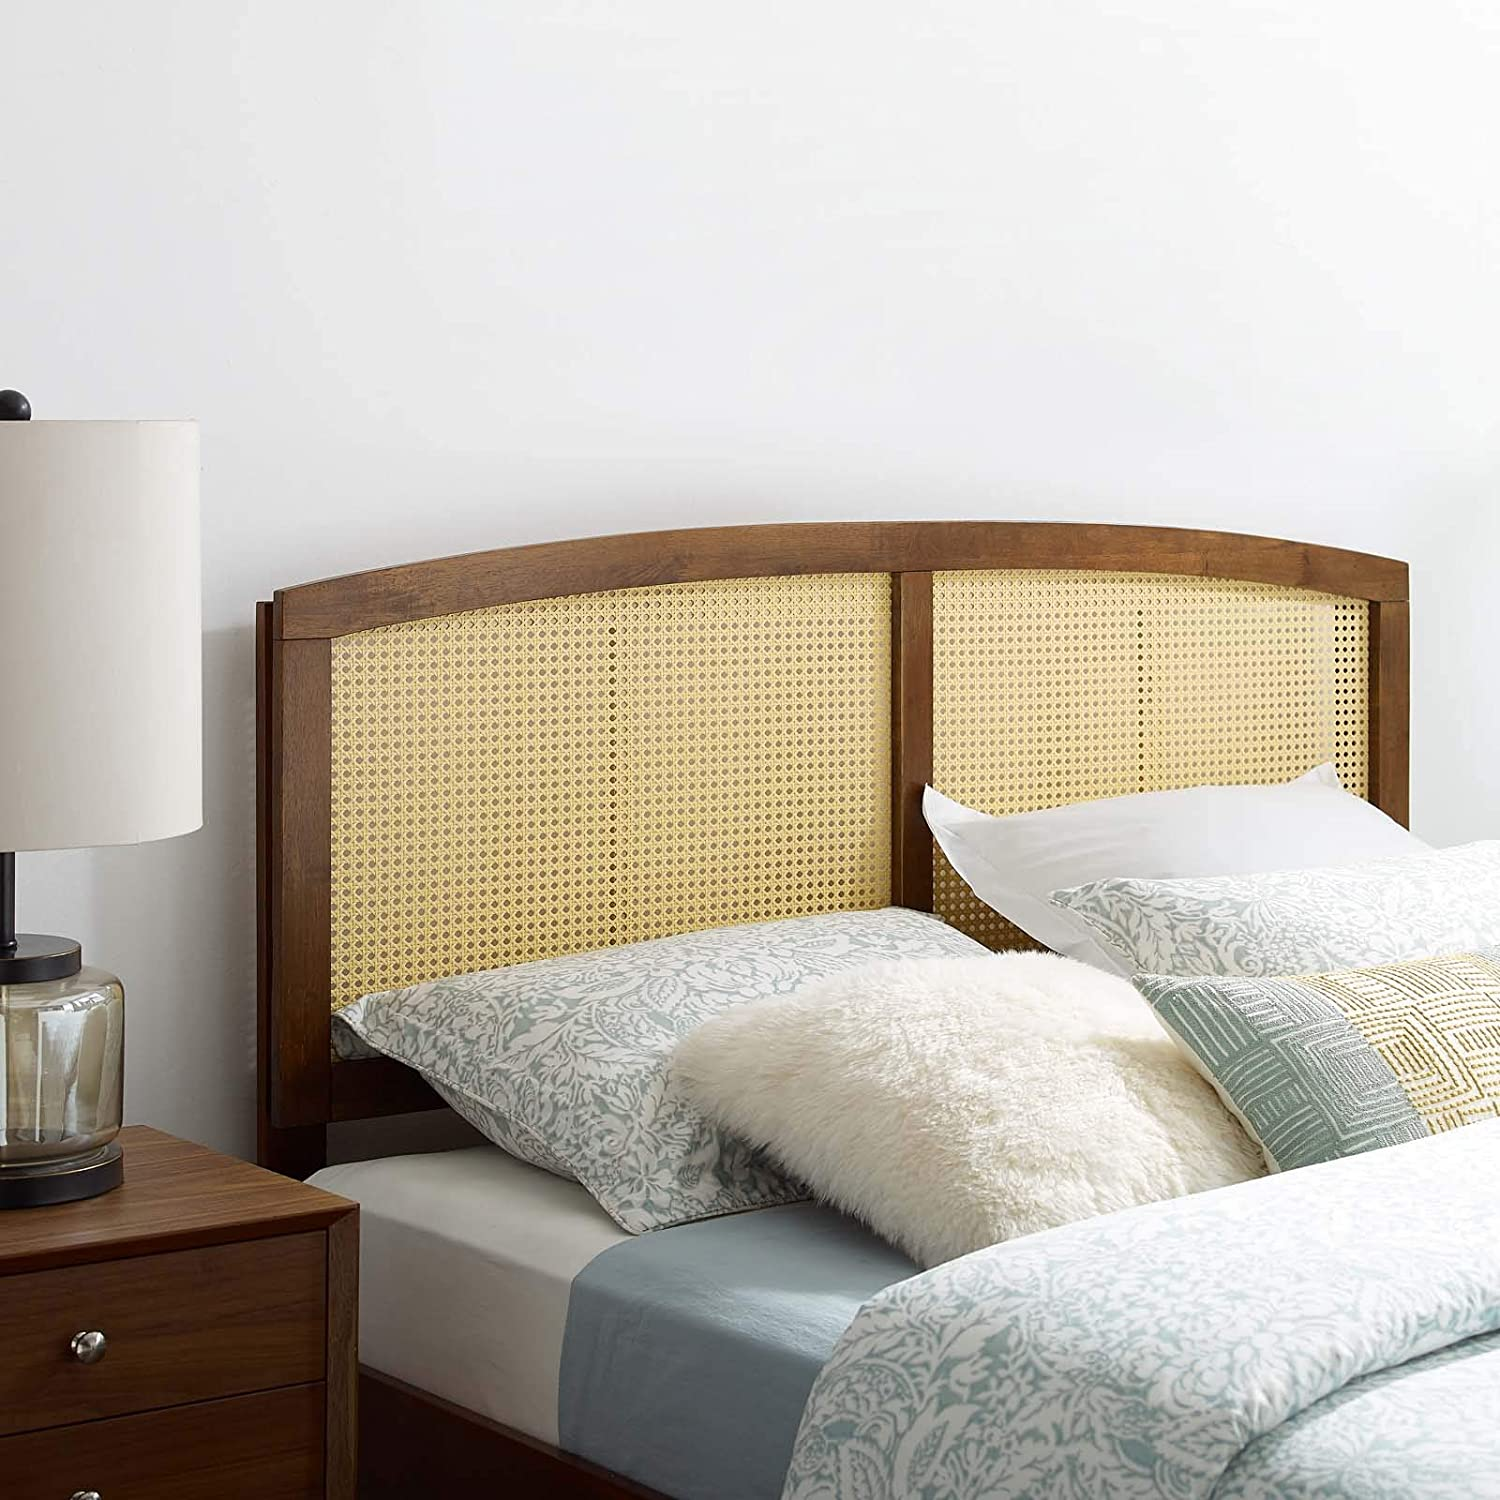 Modway Halcyon Cane Max 79% OFF security Woven Rattan Headboard Walnut in Queen